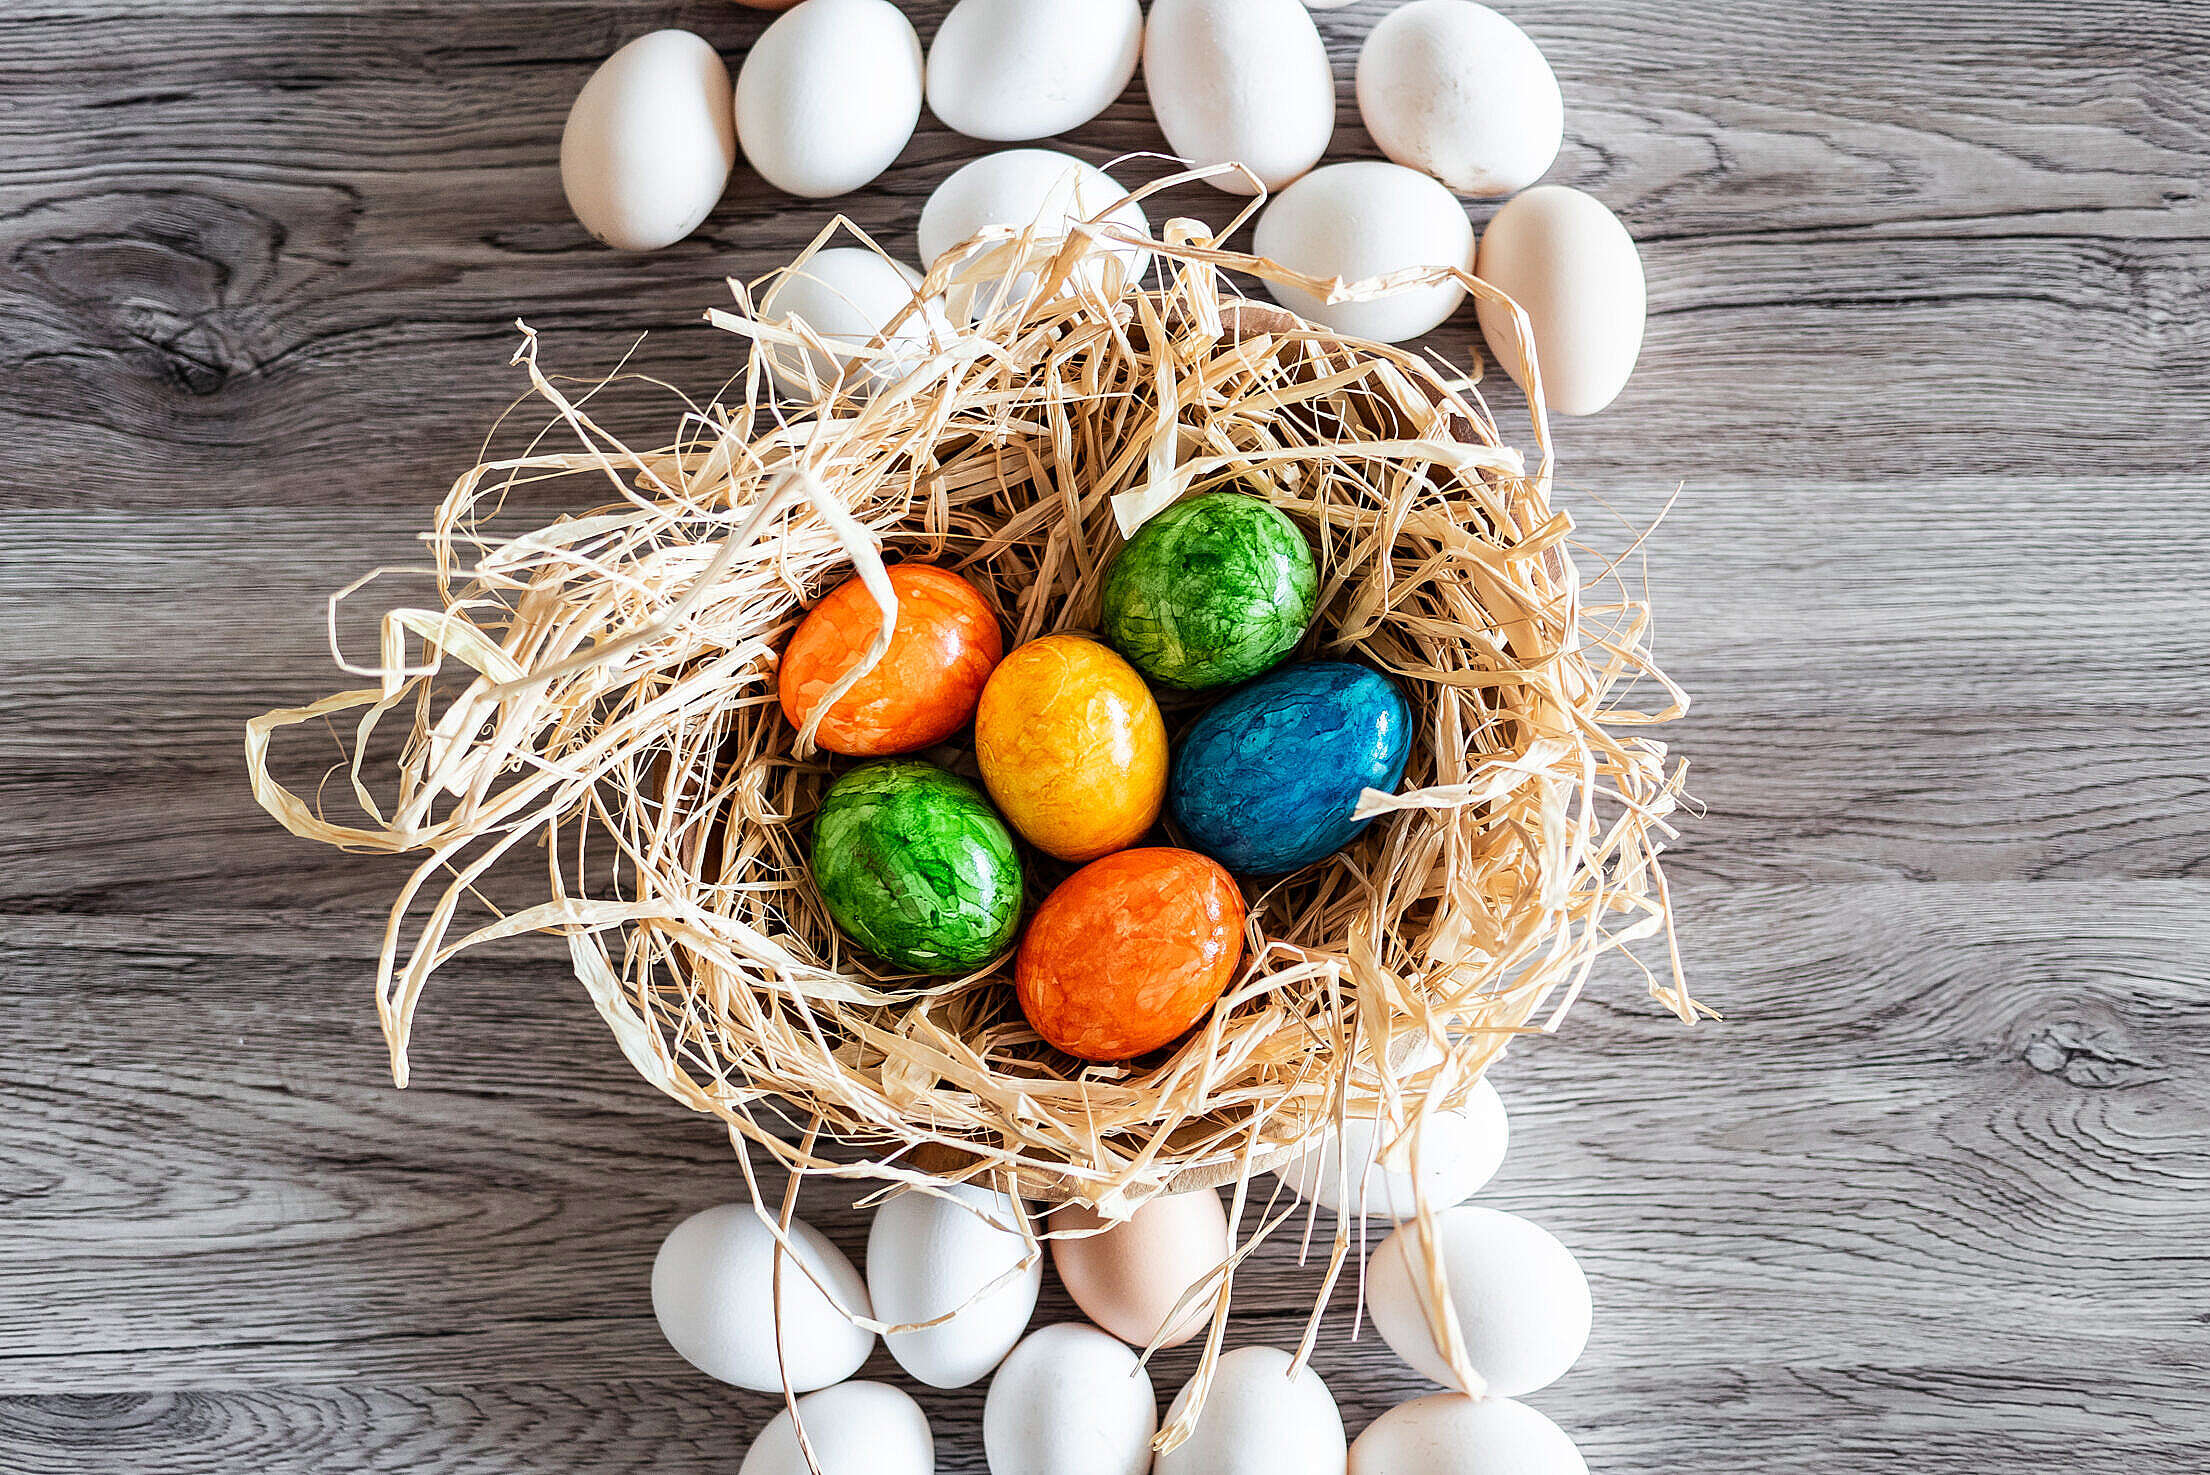 Natural White Eggs and Colored Easter Eggs Free Stock Photo